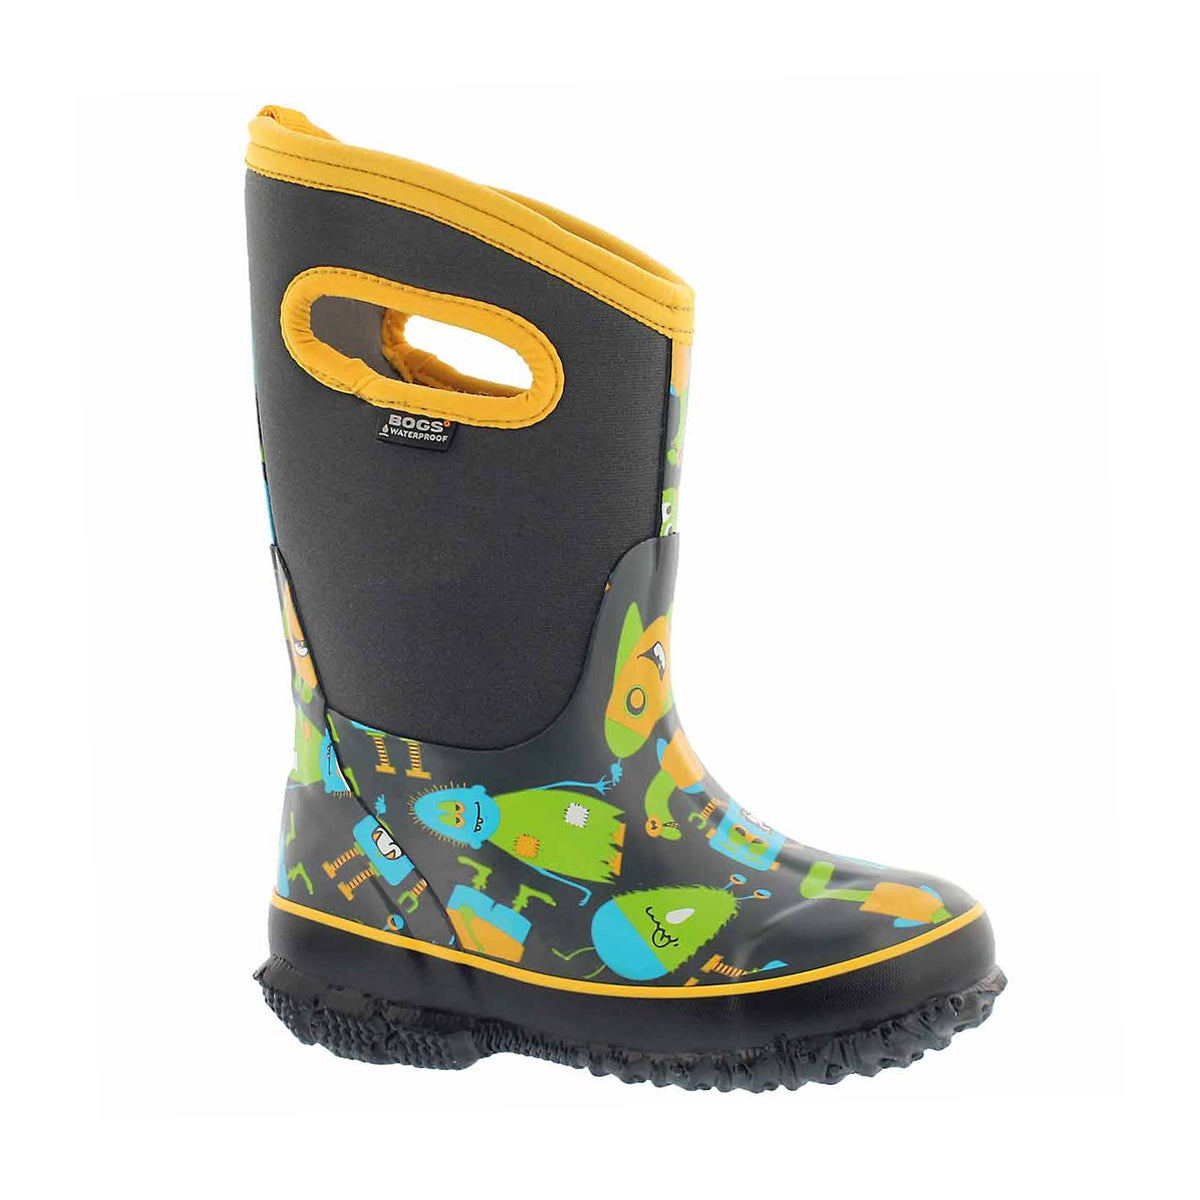 Boys' CLASSIC MONSTER grey multi wtpf boots